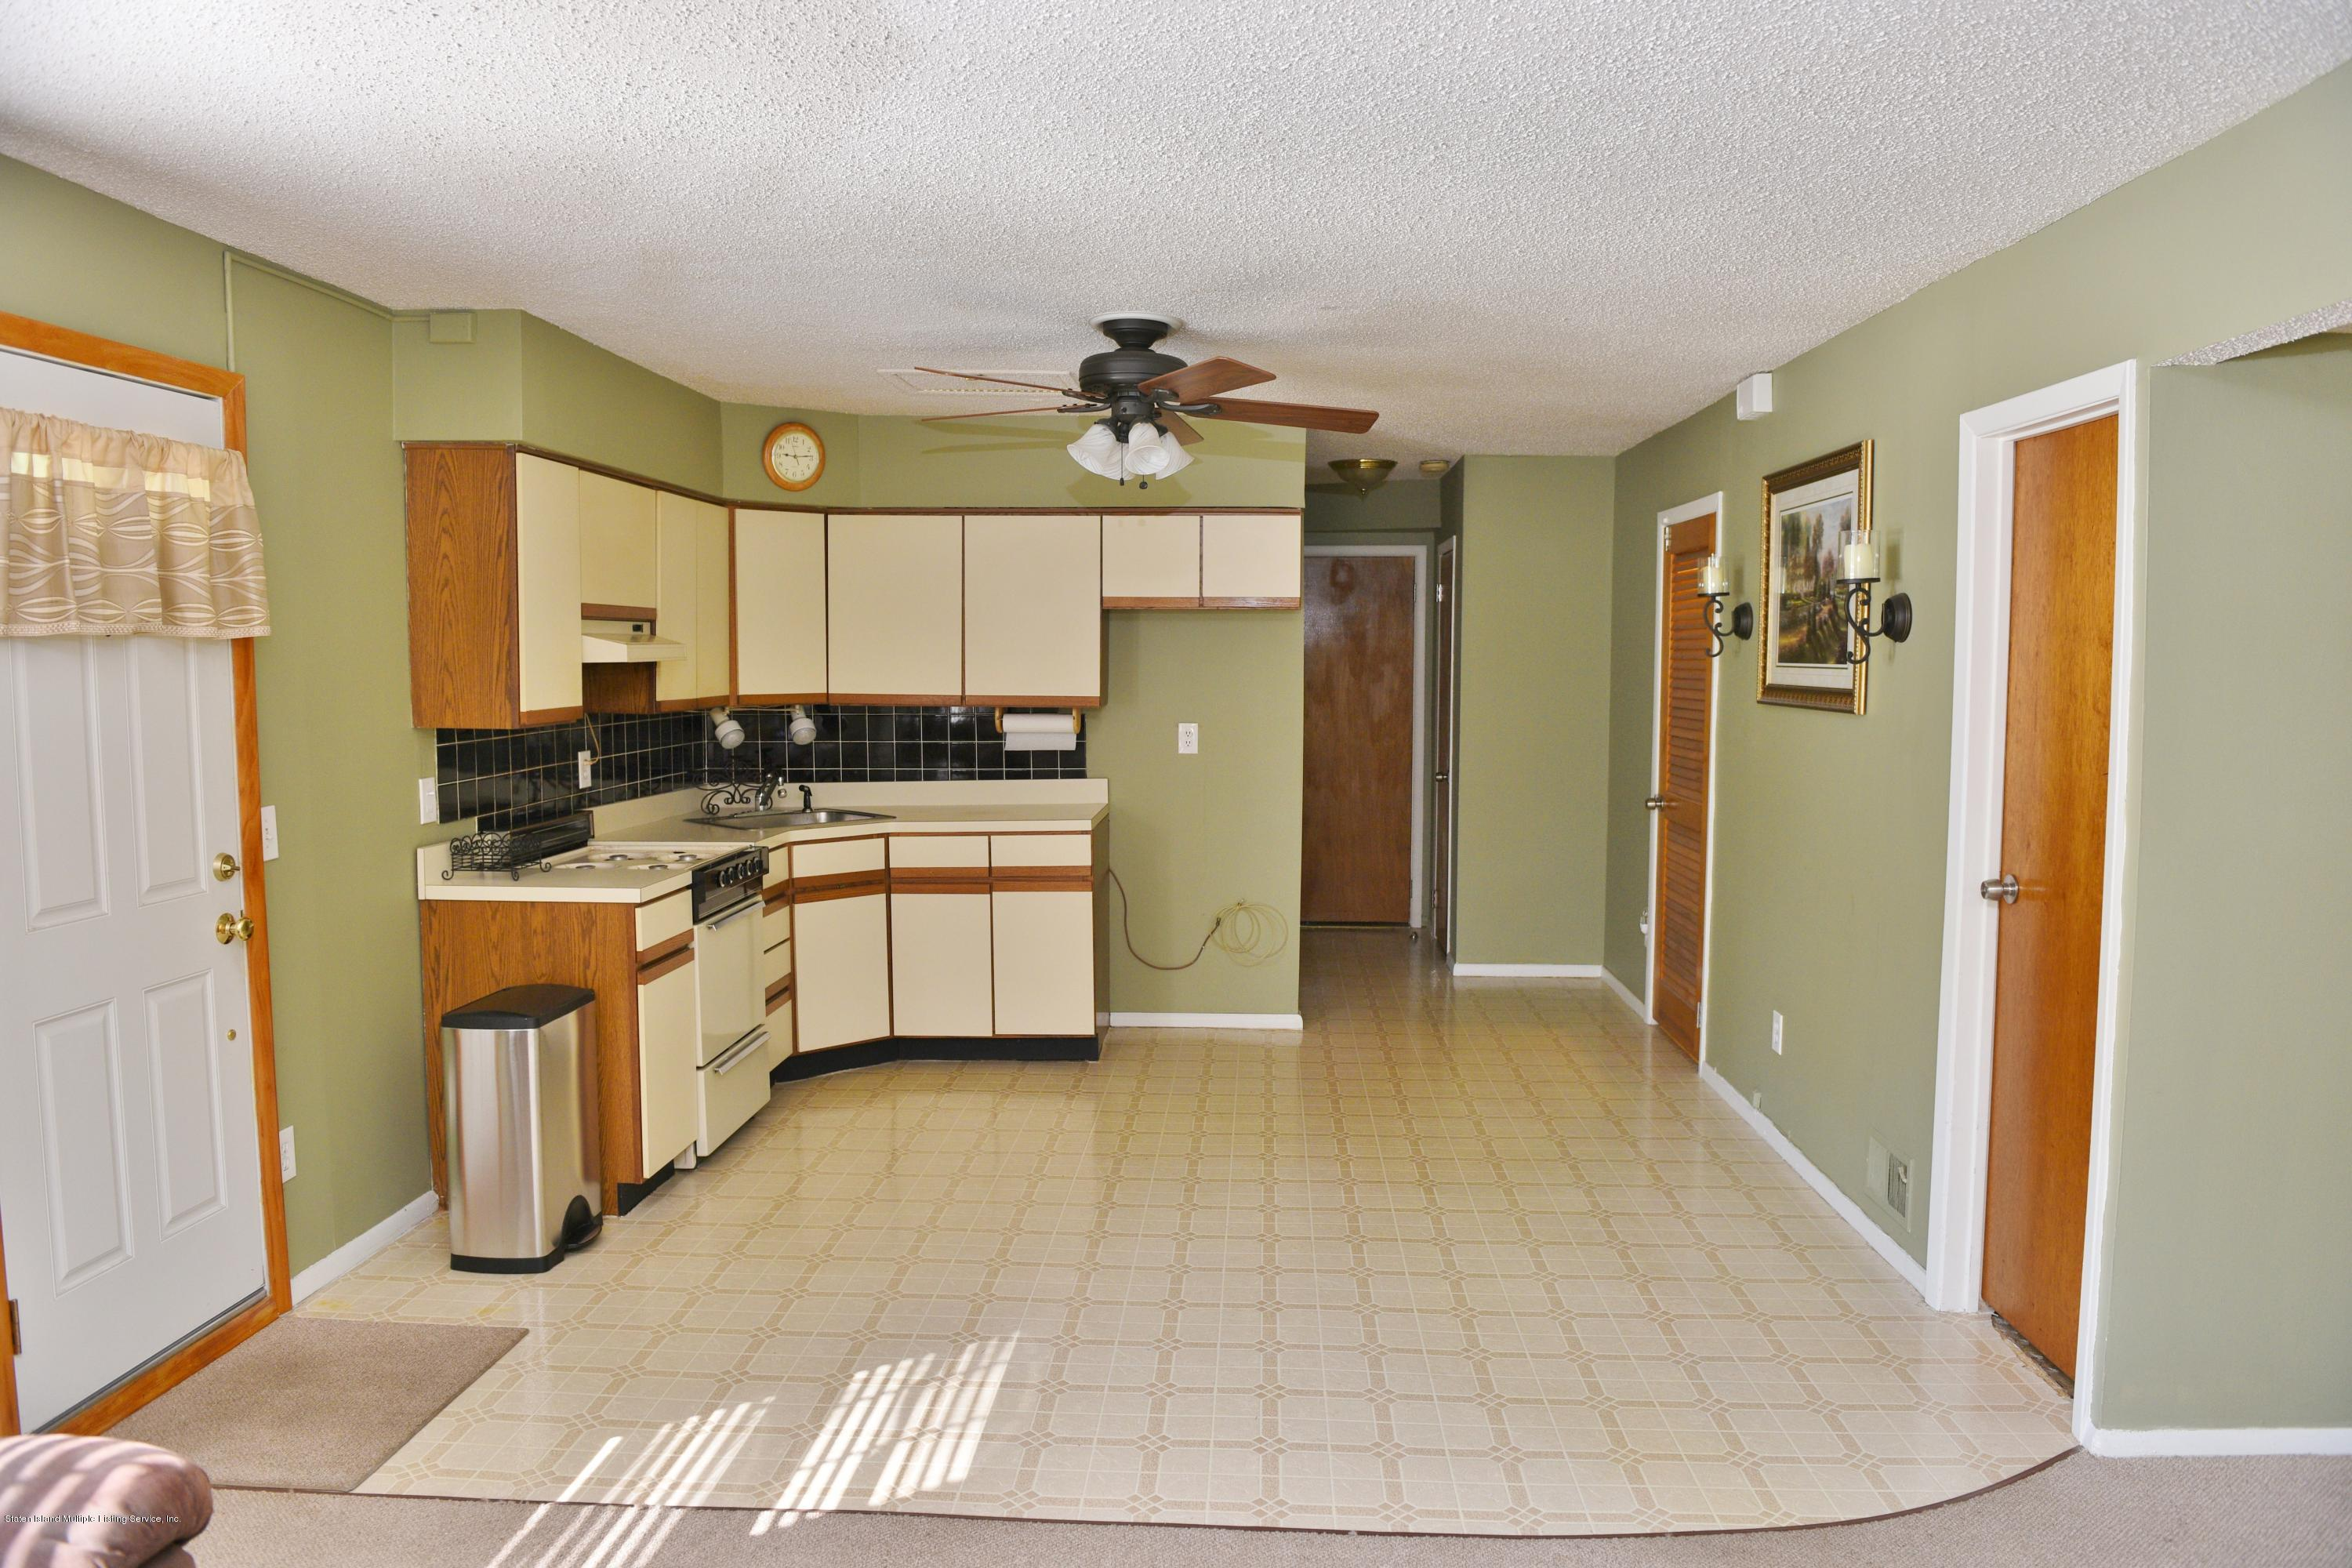 Single Family - Detached 41 Prices Lane  Staten Island, NY 10314, MLS-1129754-33